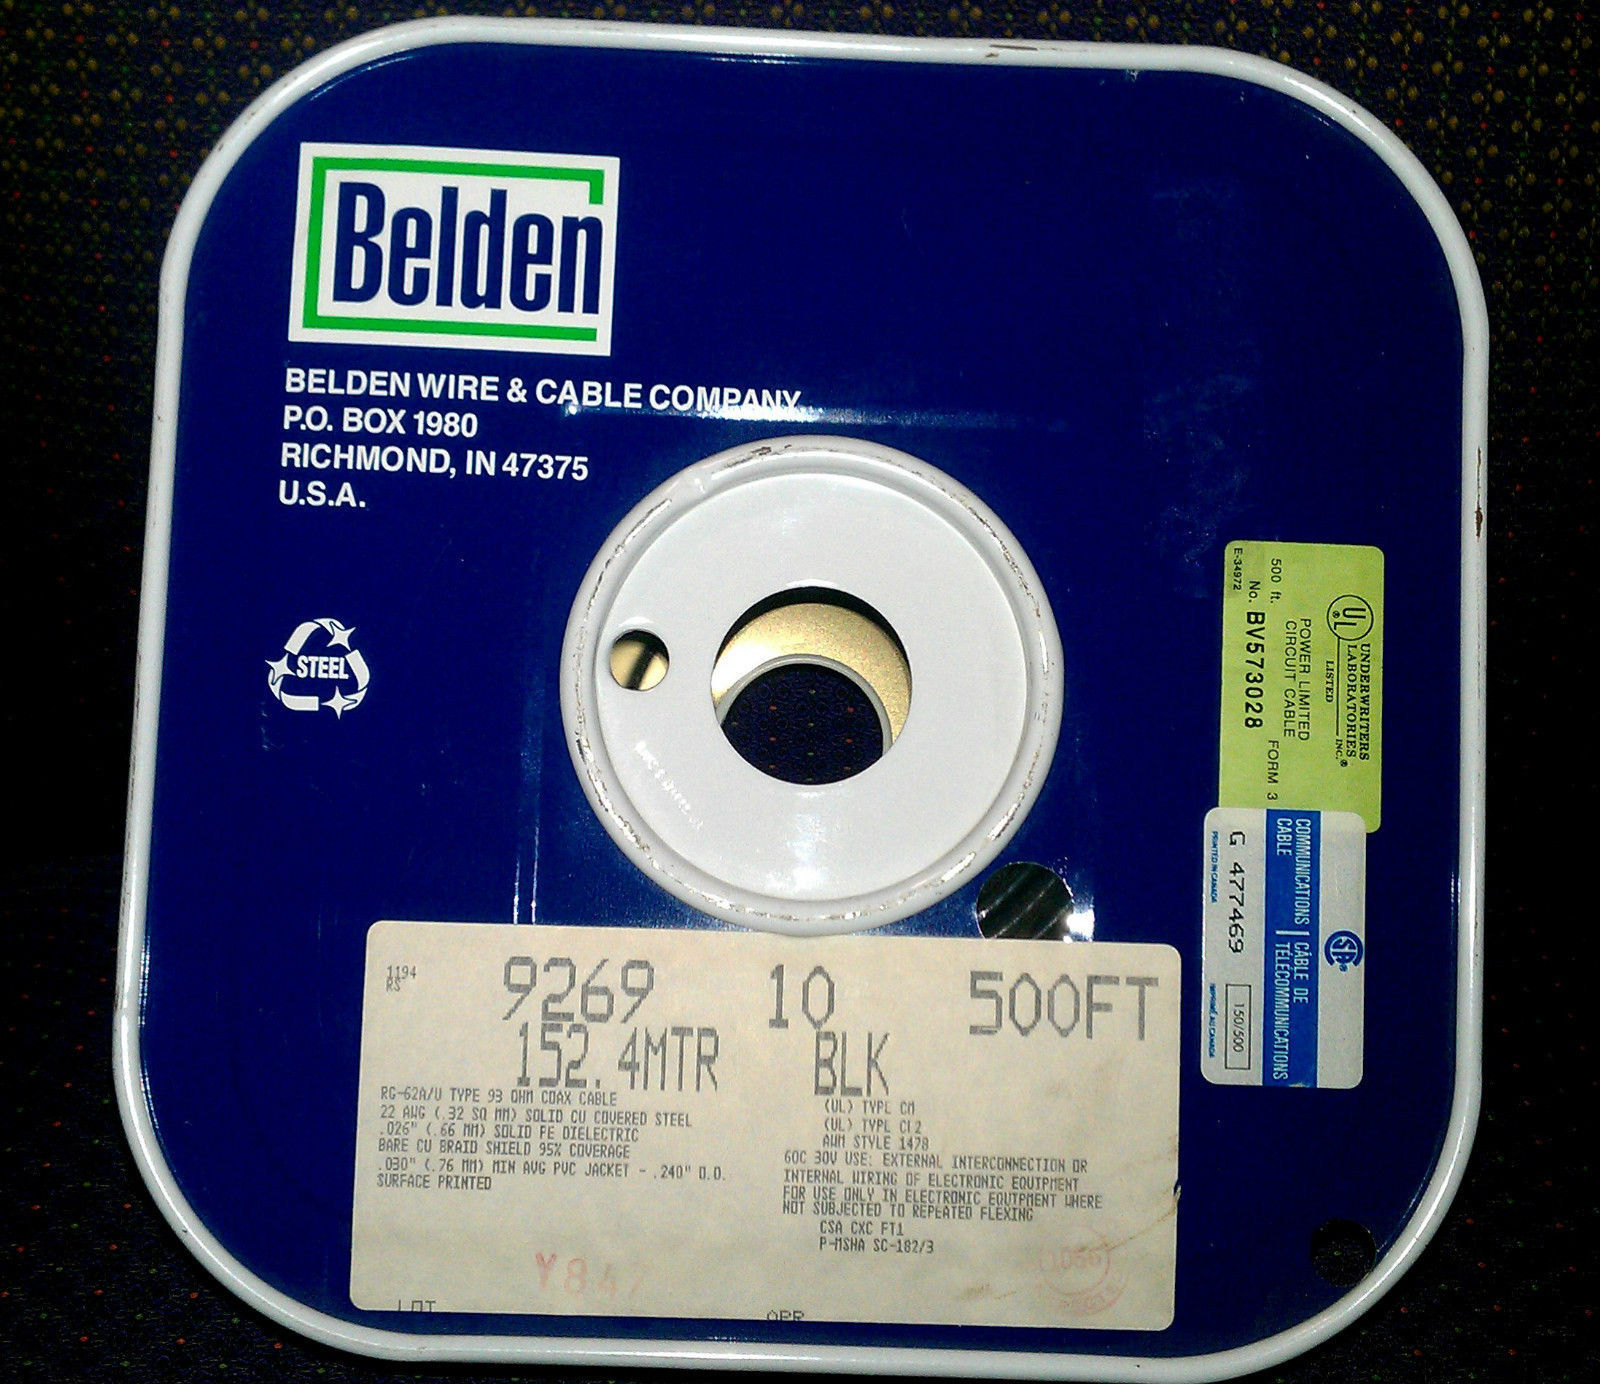 Belden 9269 Coaxial Cable, RG-62A/U, Black, and similar items